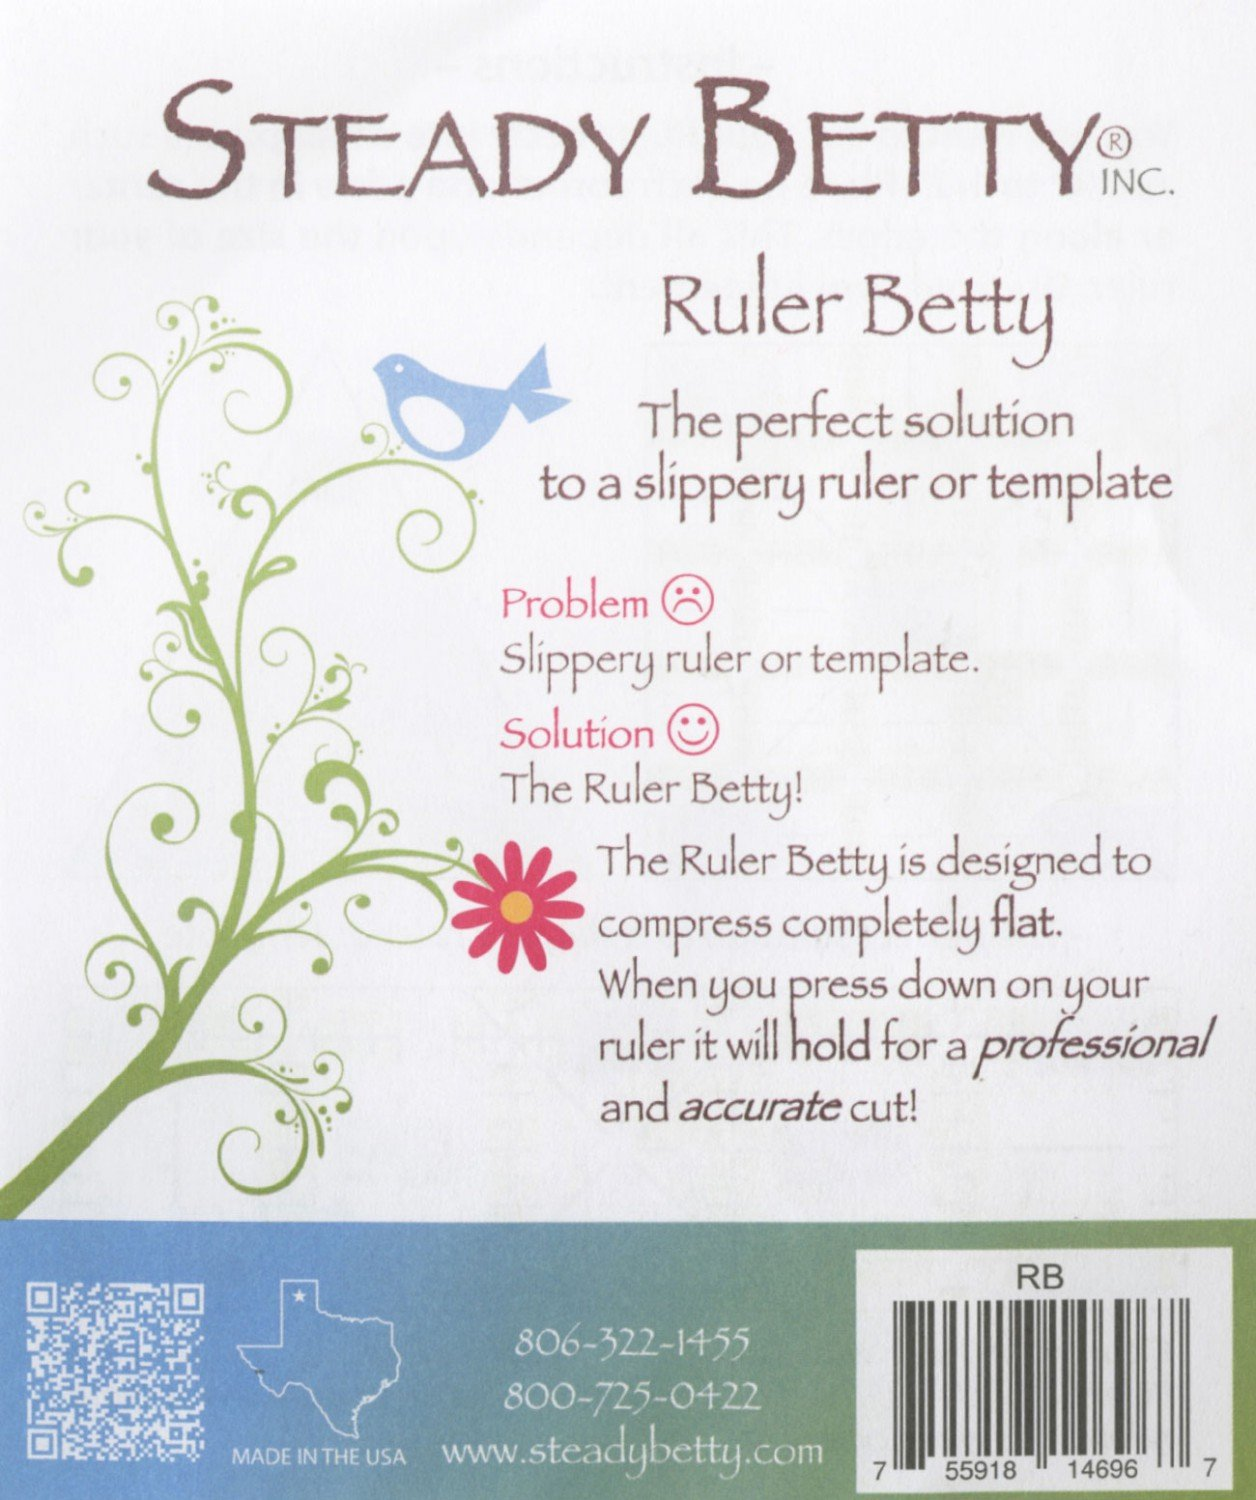 Strip Packs Steady Betty 1/4in x 4 1/2in 10ct